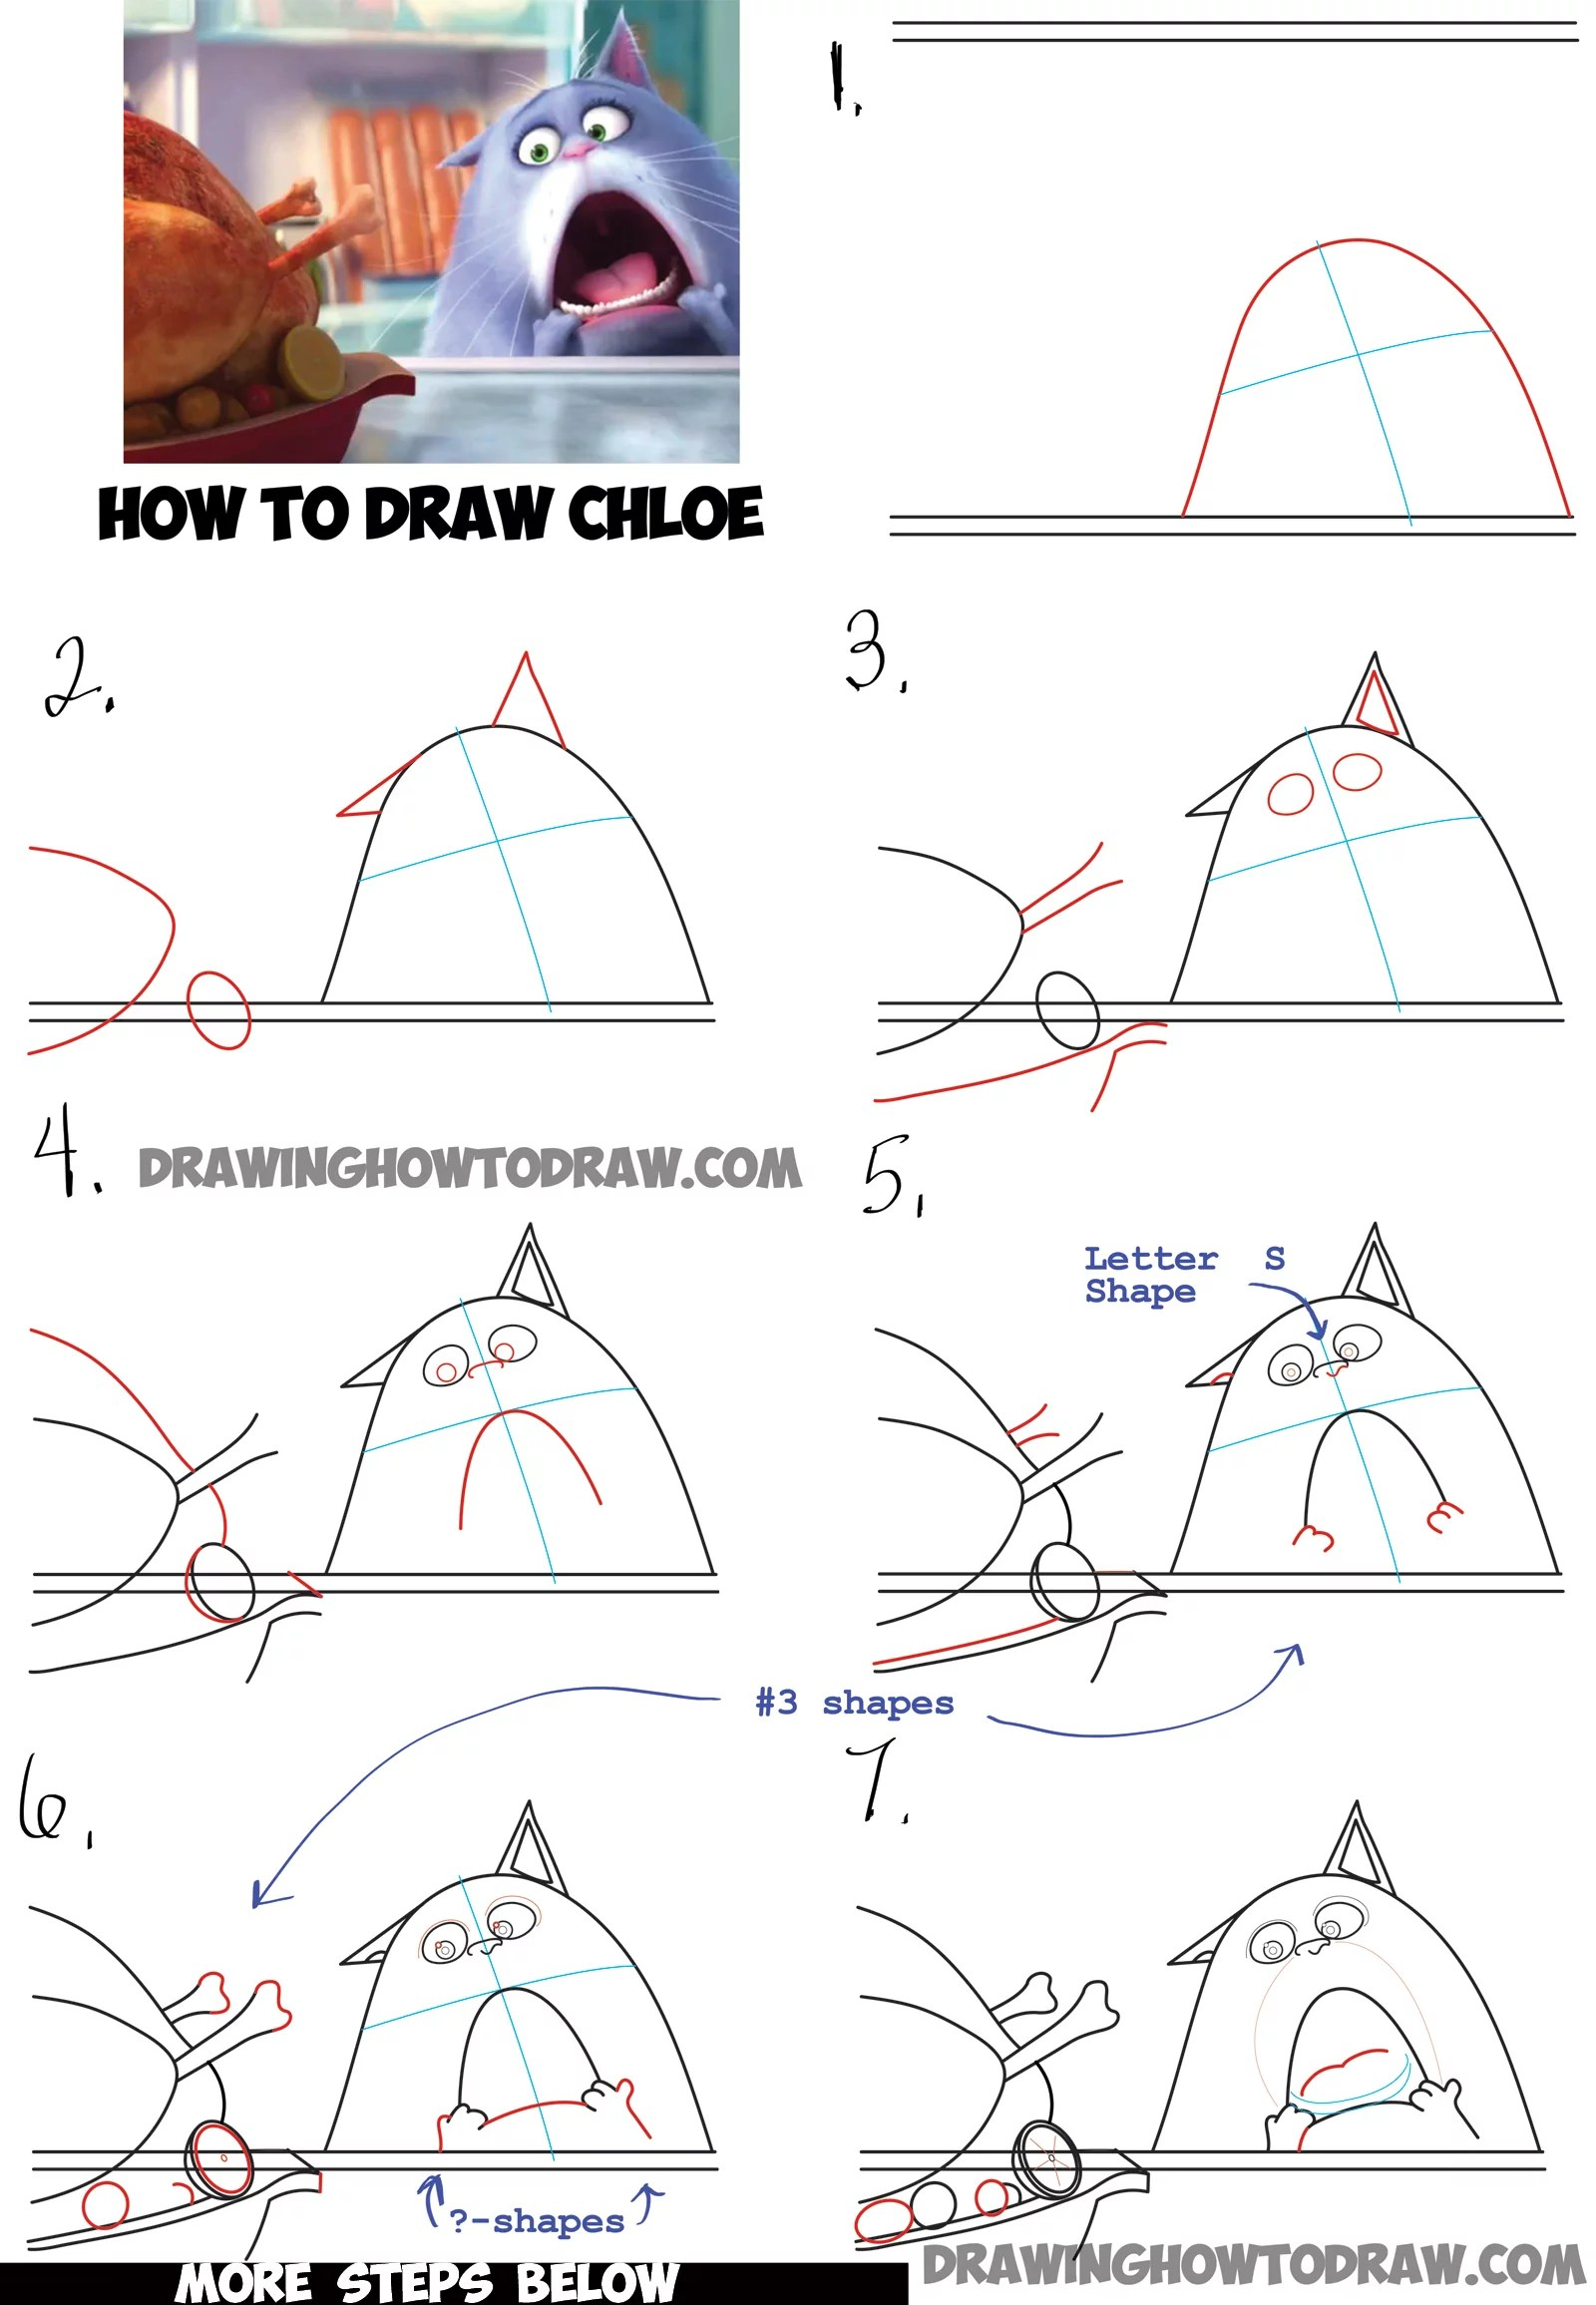 How To Draw Chloe The Cat From The Secret Life Of Pets